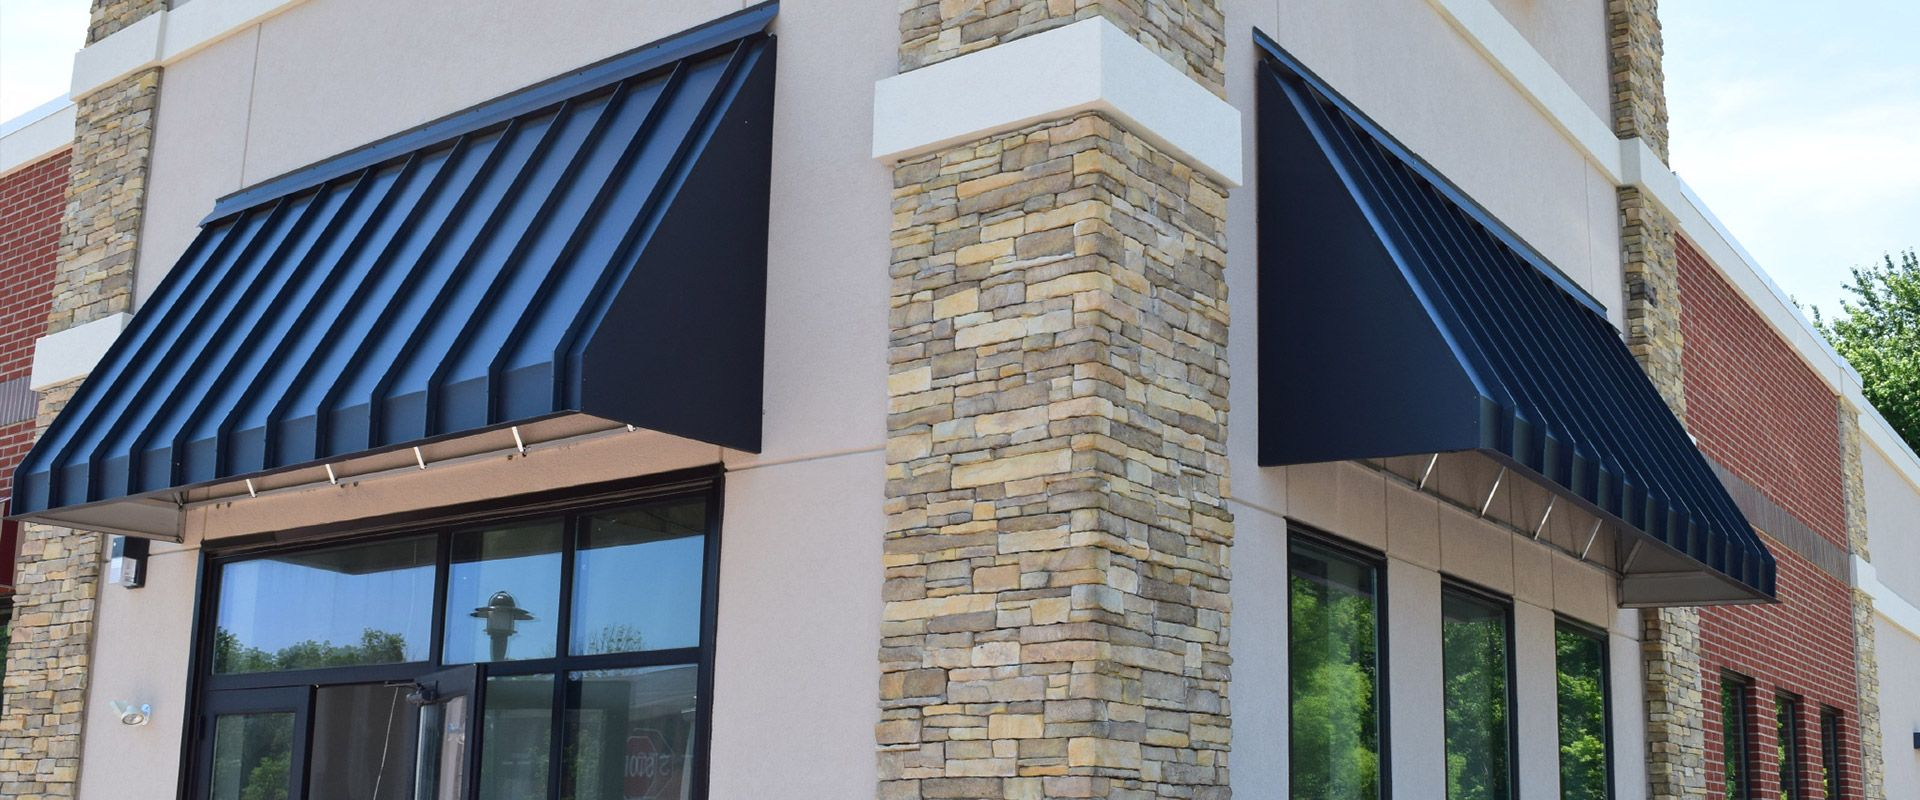 Architectural Canopies Offers Designing Manufacturing And